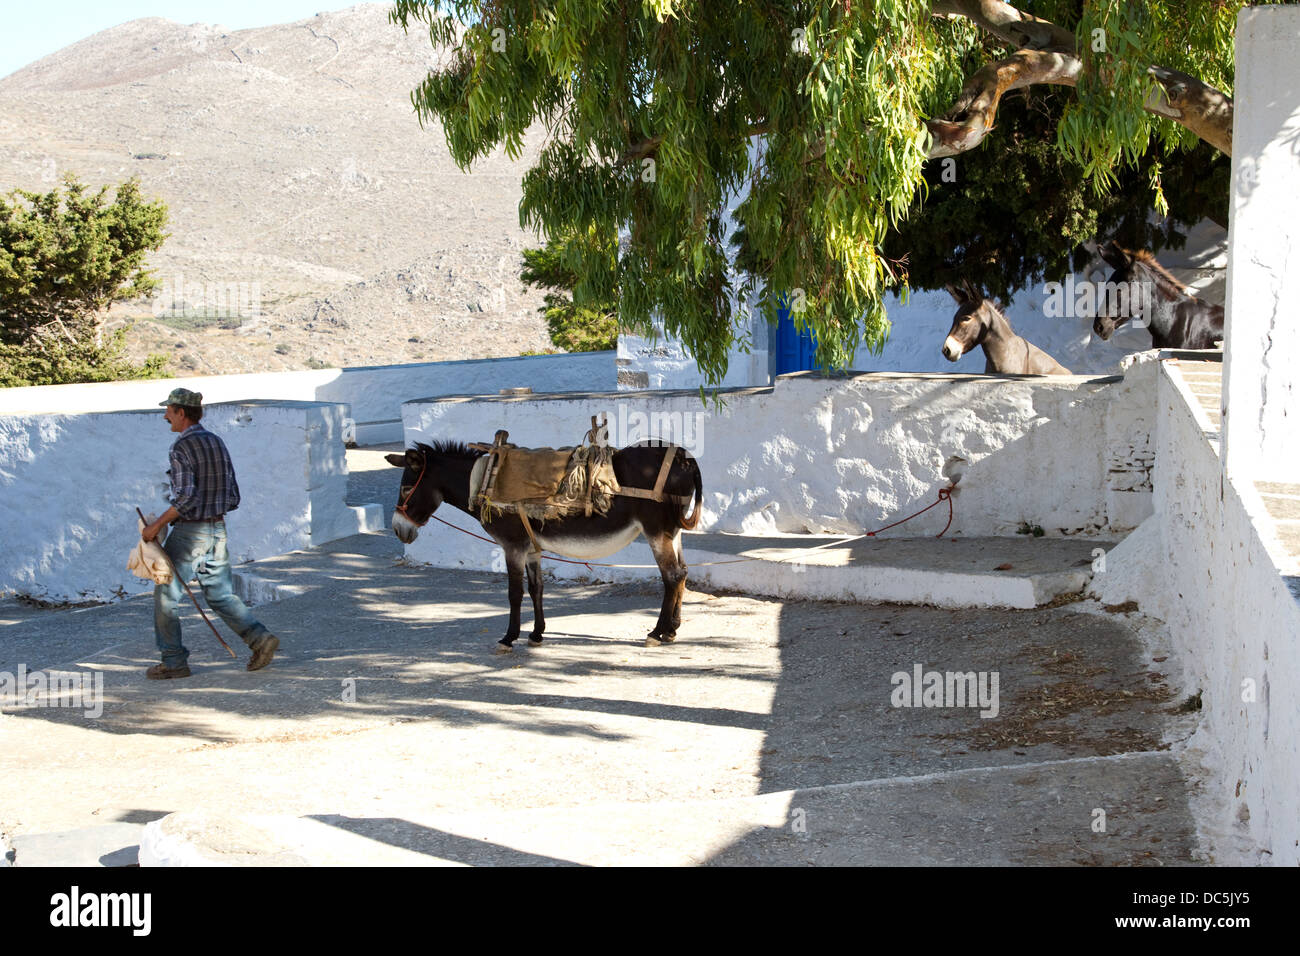 Greek man walks past donkey as mules look on - Stock Image